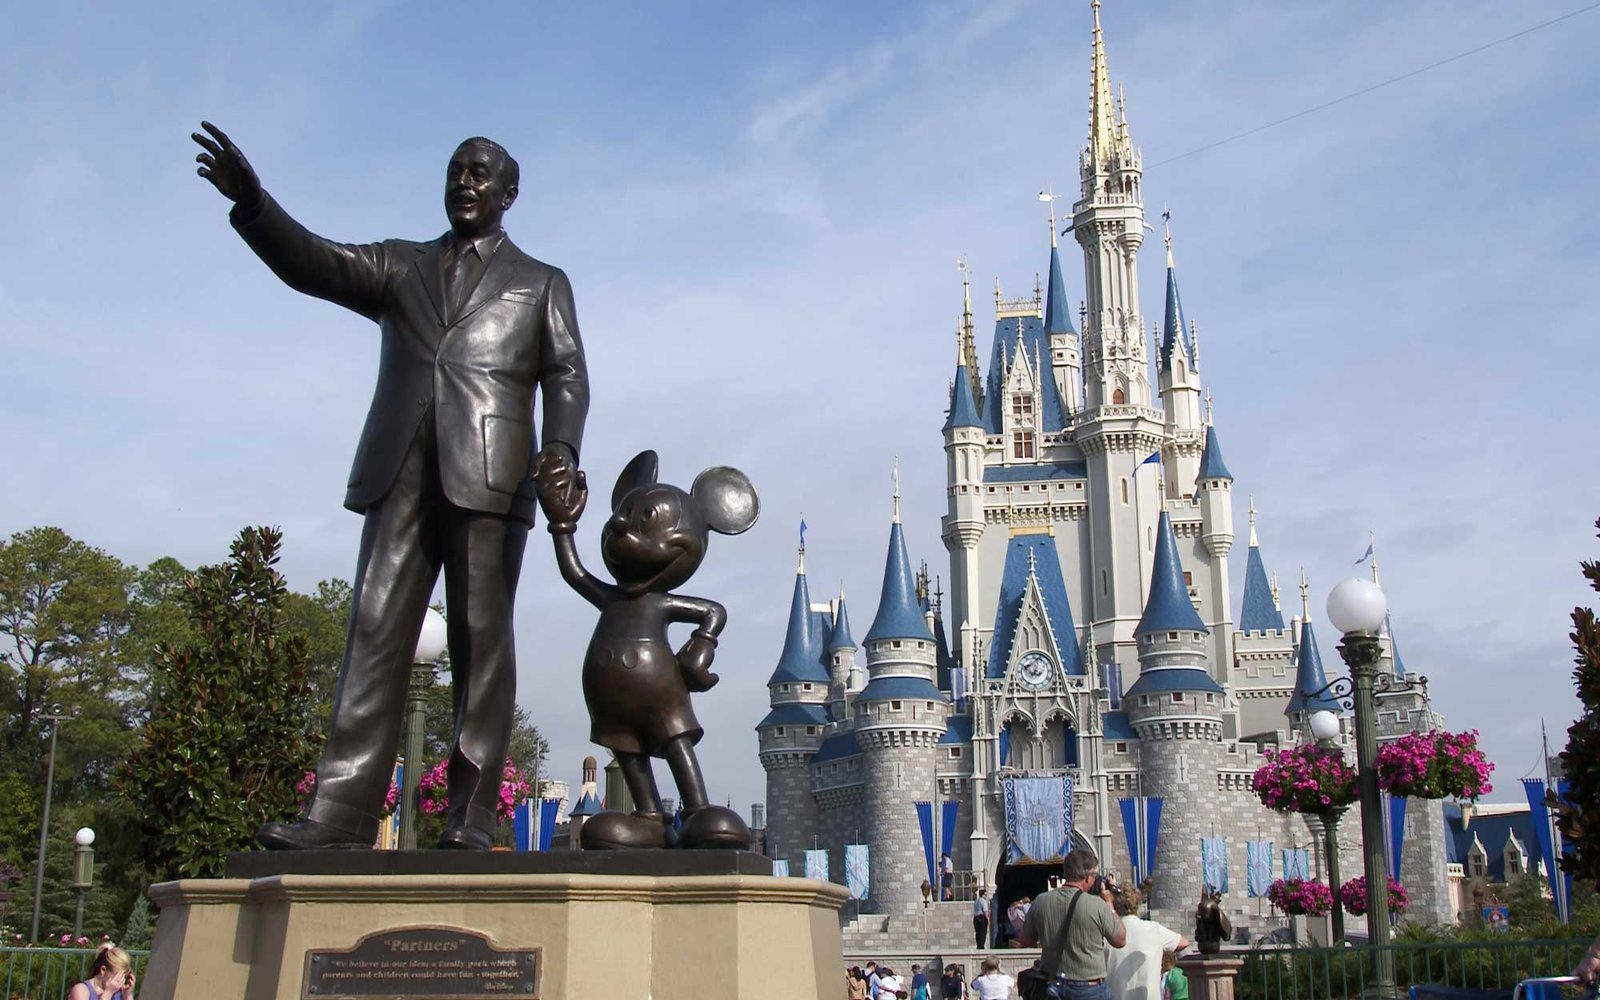 UNITED STATES - FEBRUARY 11:  A statue of Walt Disney and Mickey Mouse stands in front of the Cinderella's castle at Walt Disney World's Magic Kingdom in Lake Buena Vista, Florida, Wednesday February 11, 2004. Growing attendance at the Walt Disney Co.'s t